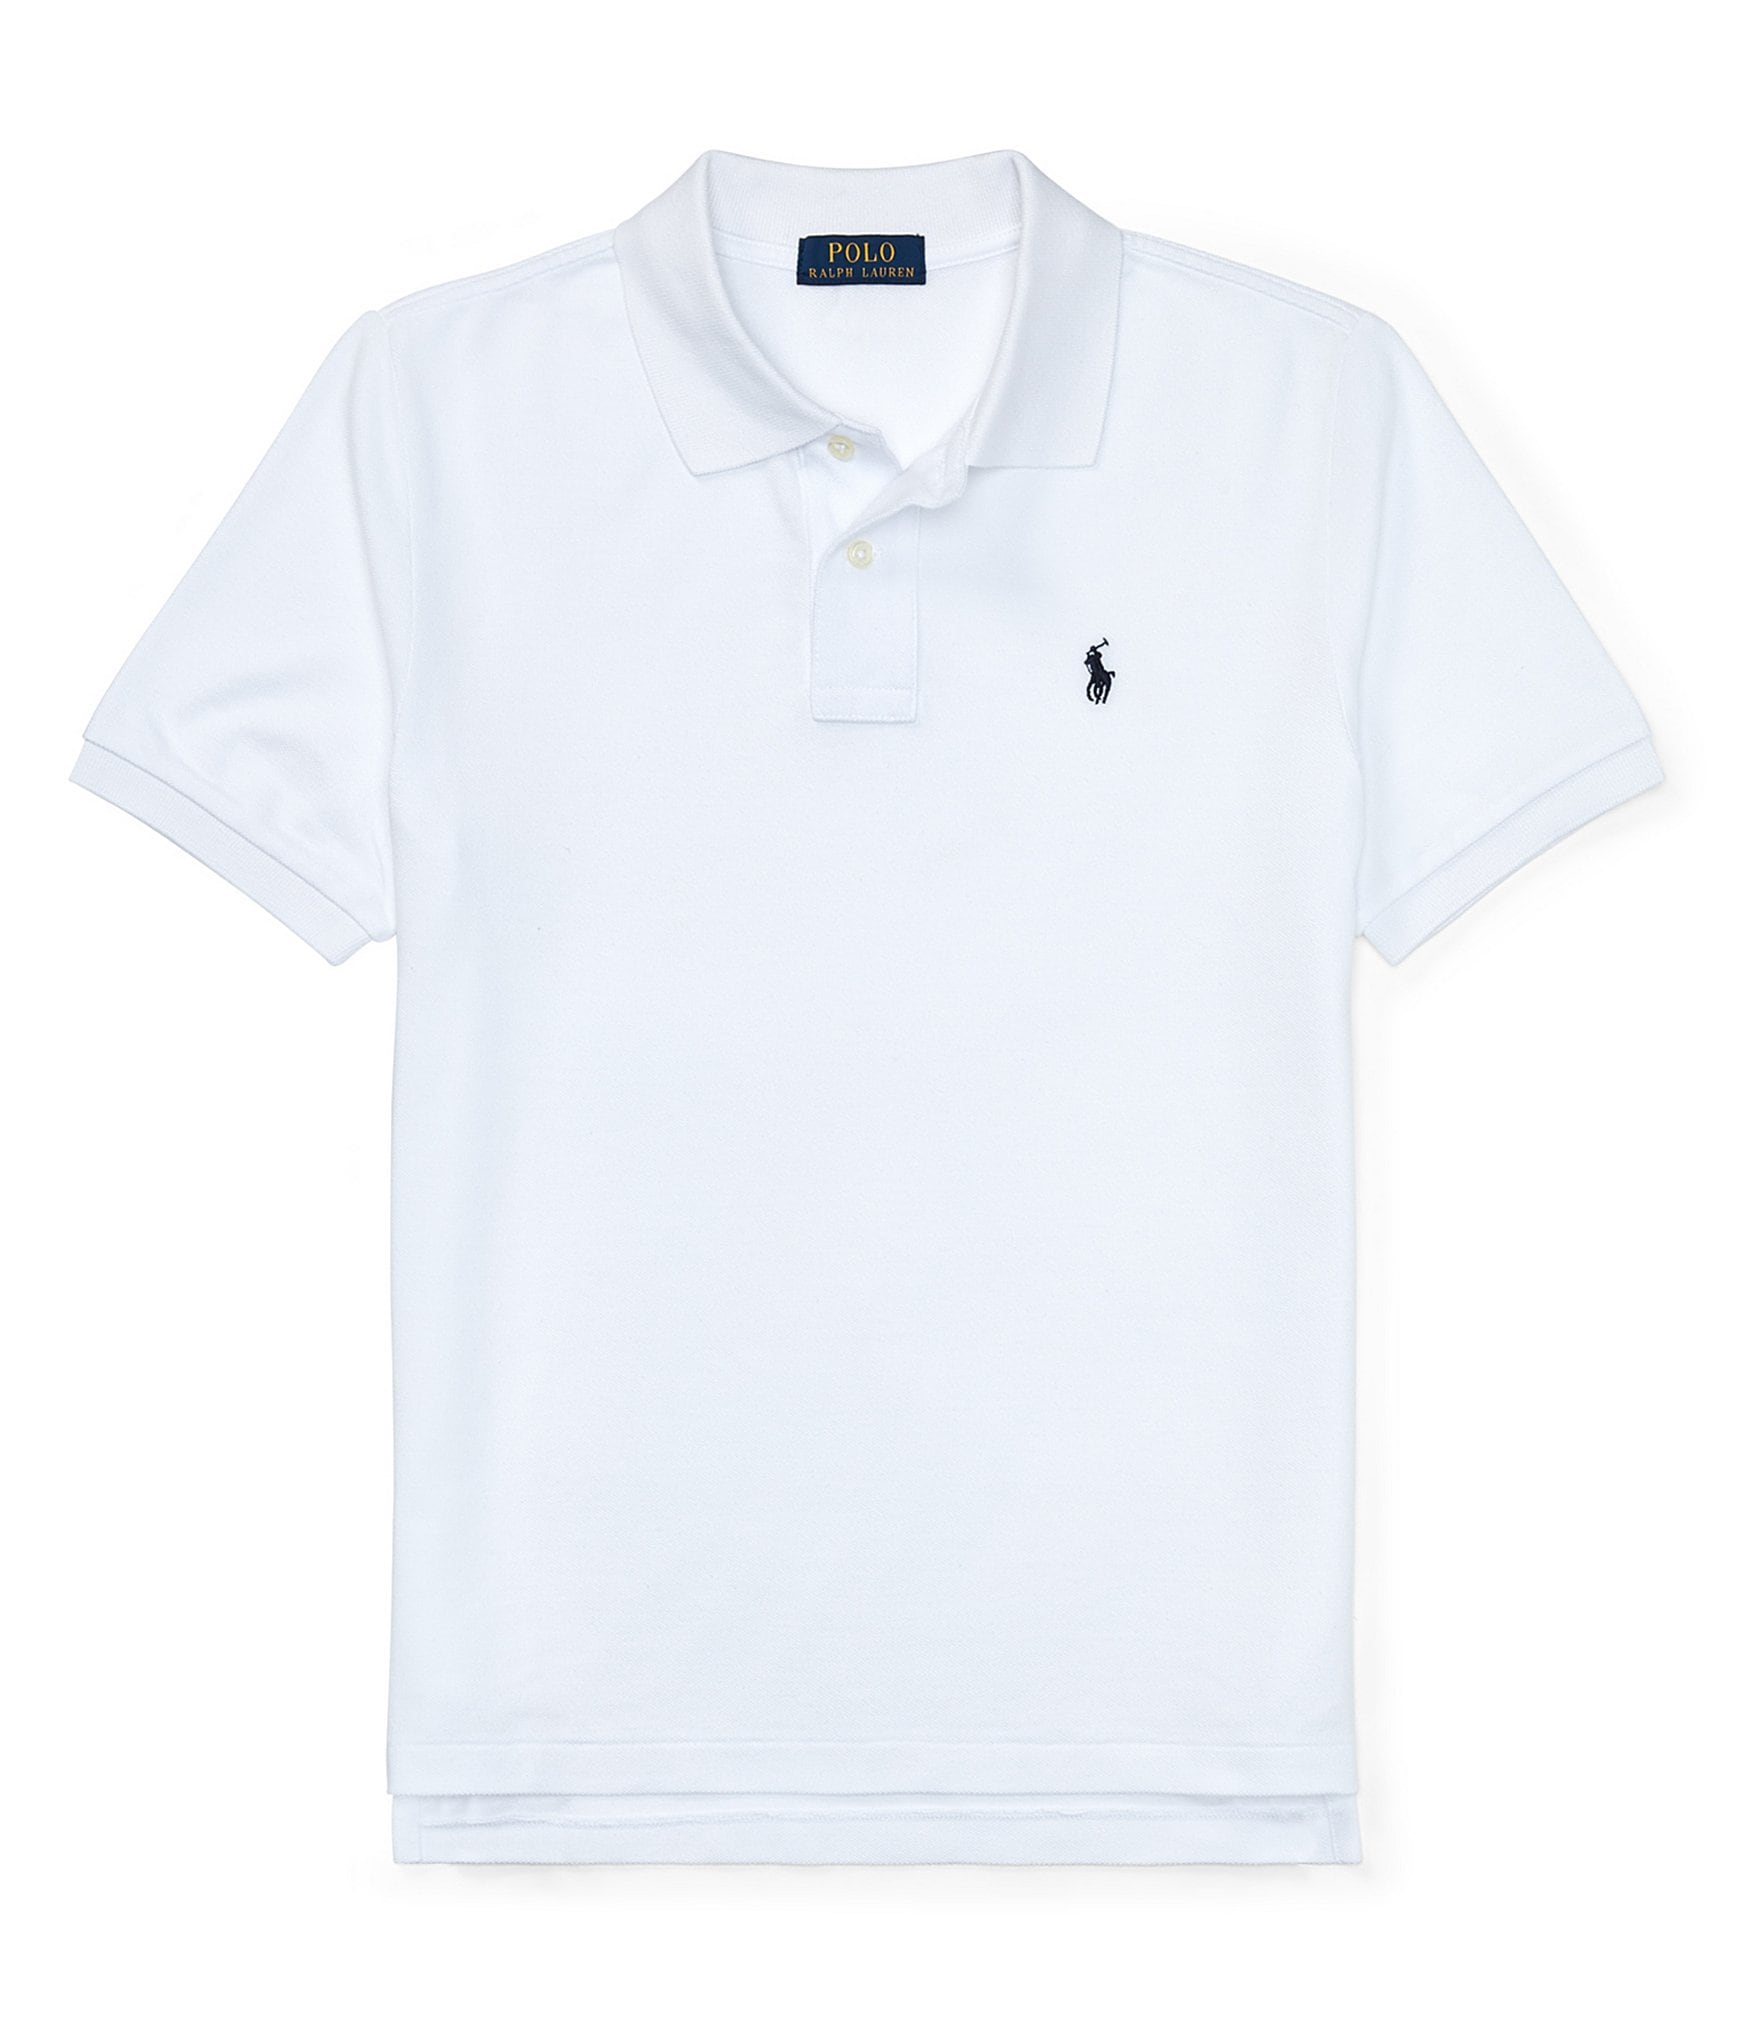 Ralph lauren polo shirt logo images for Ralph lauren kids